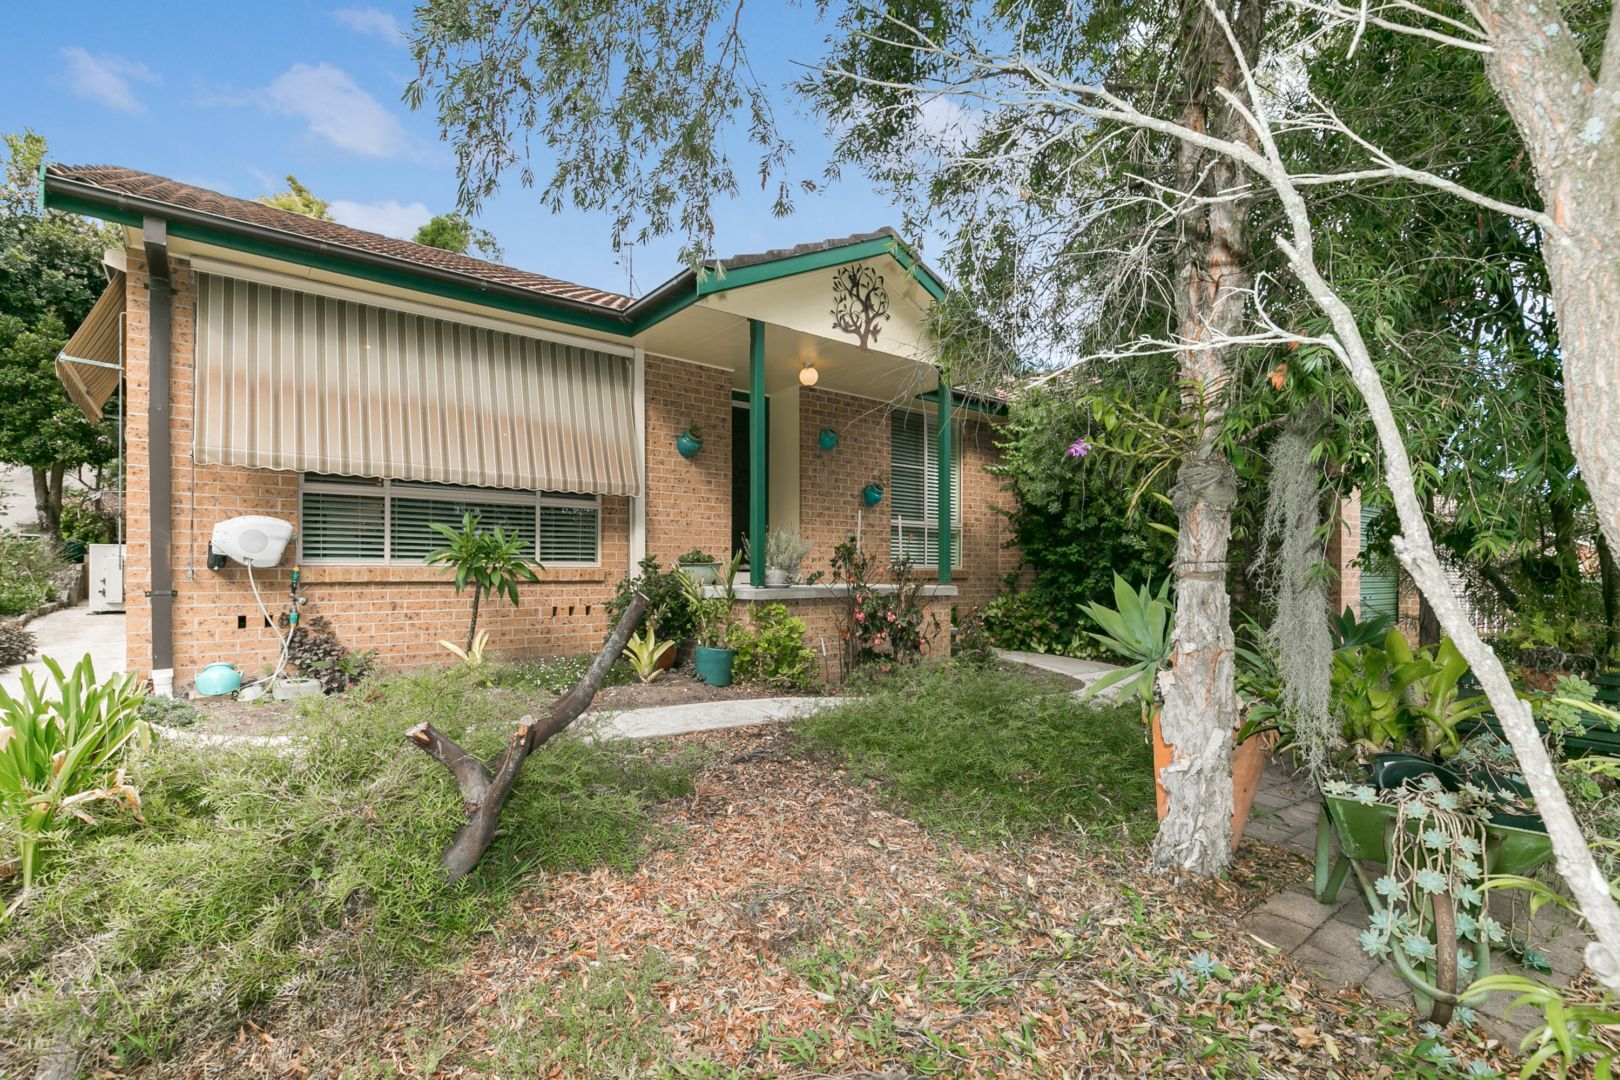 26A Turnbull Street, Fennell Bay NSW 2283, Image 0